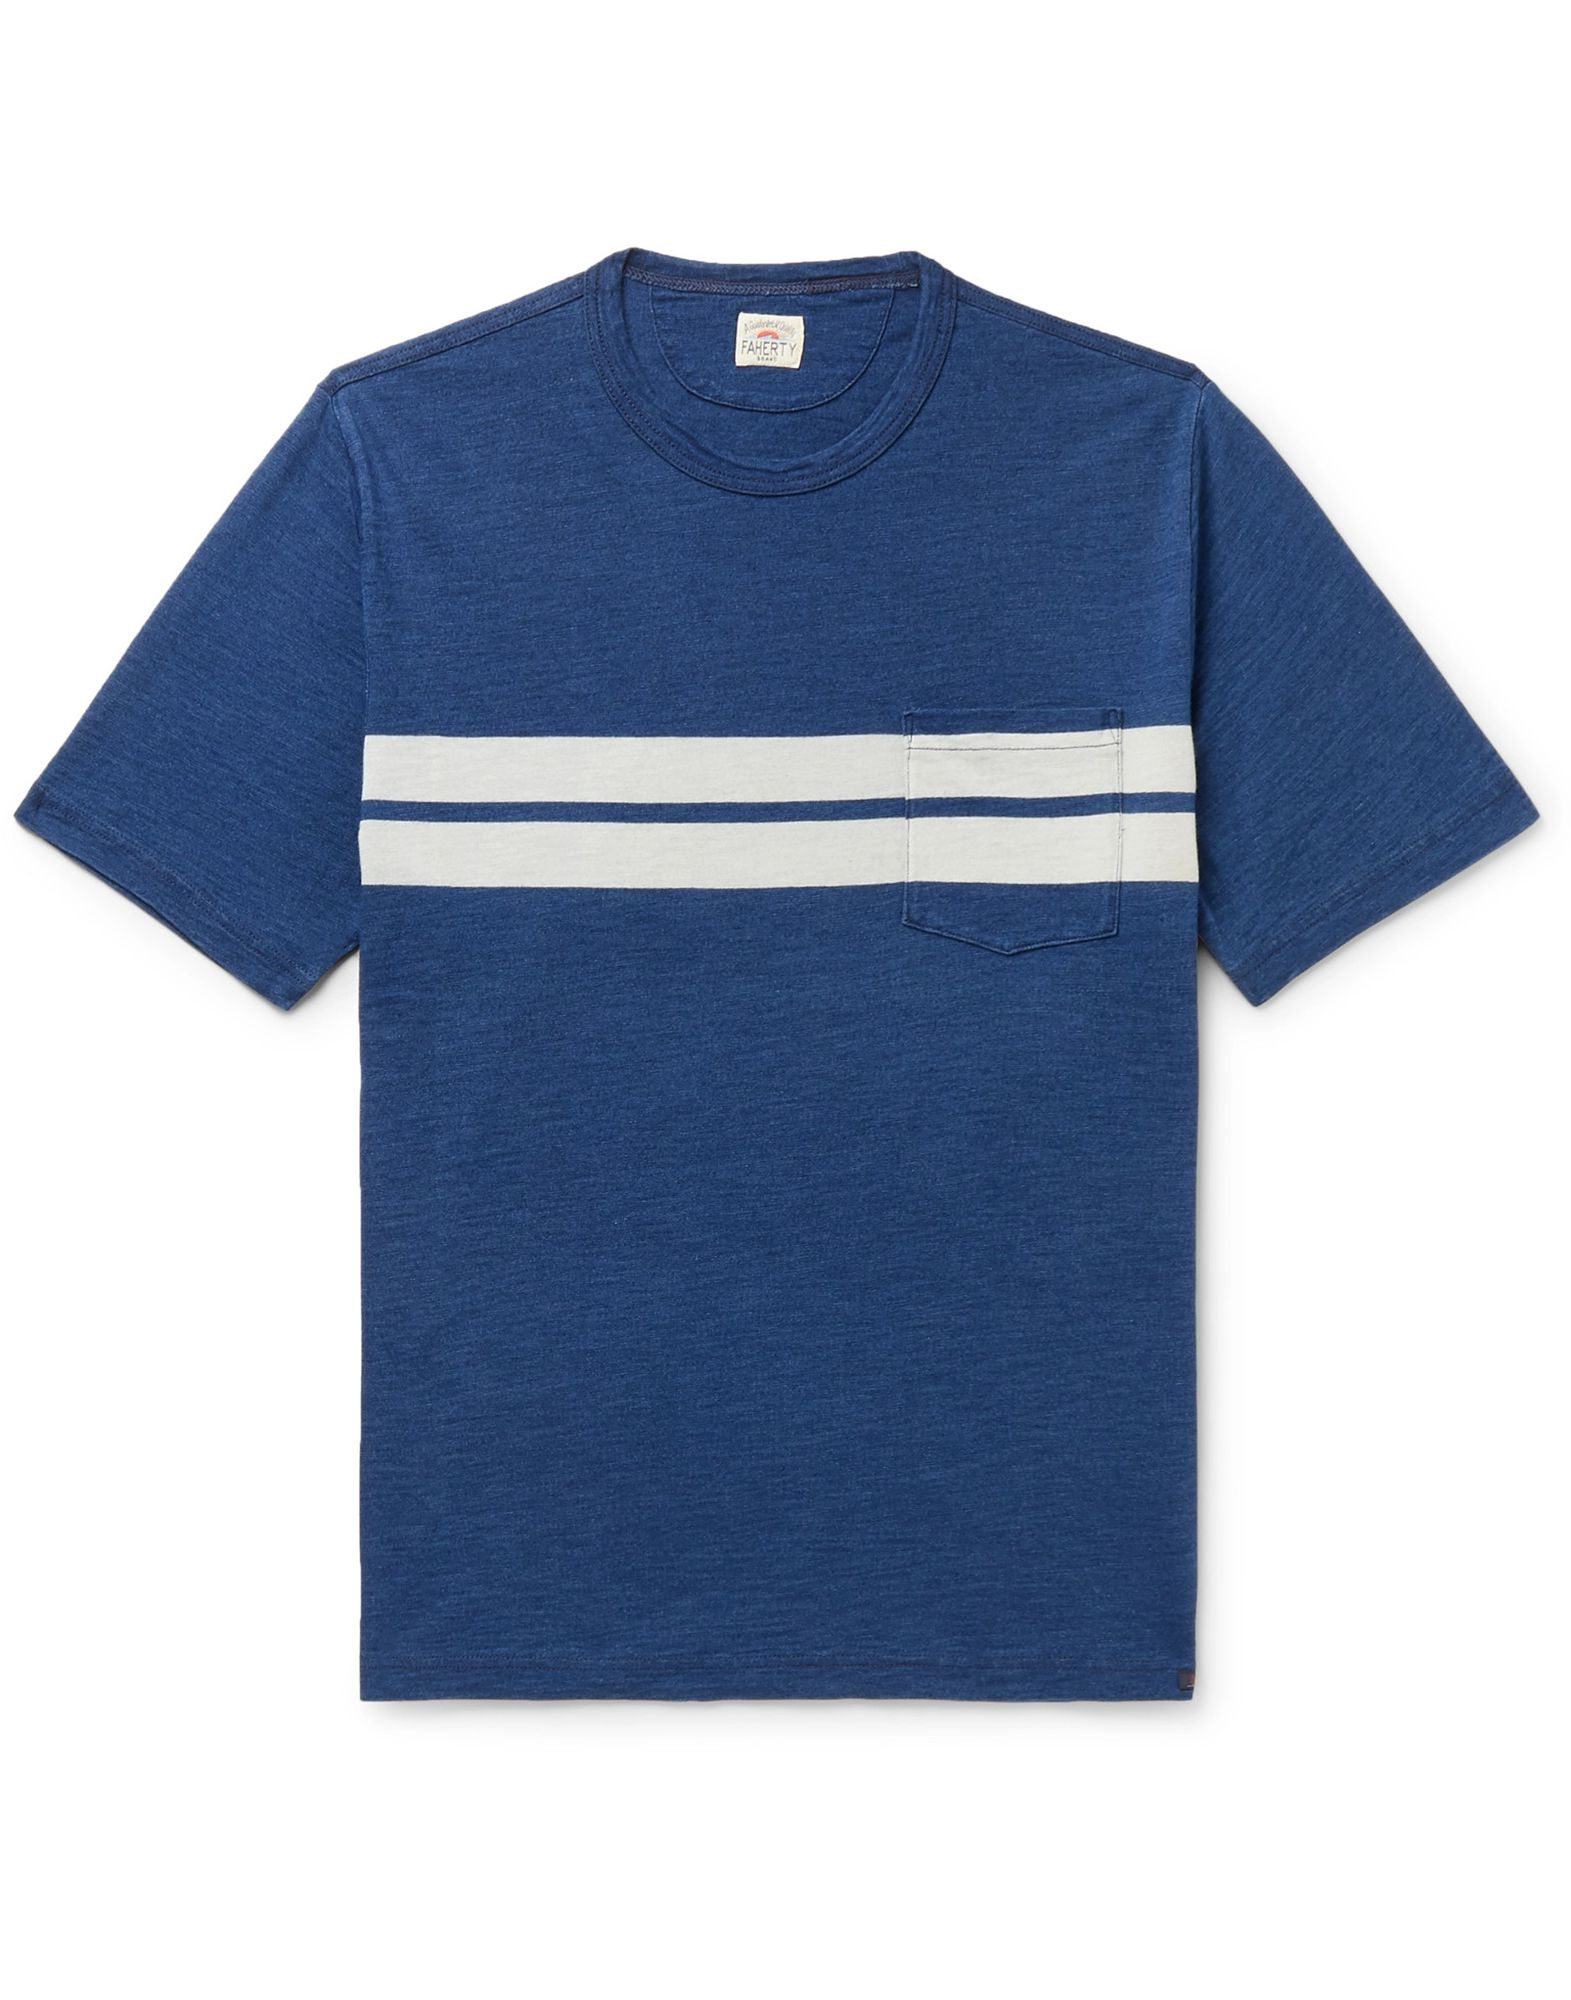 FAHERTY T-shirts. jersey, no appliqués, solid color, round collar, short sleeves, single pocket. 100% Cotton